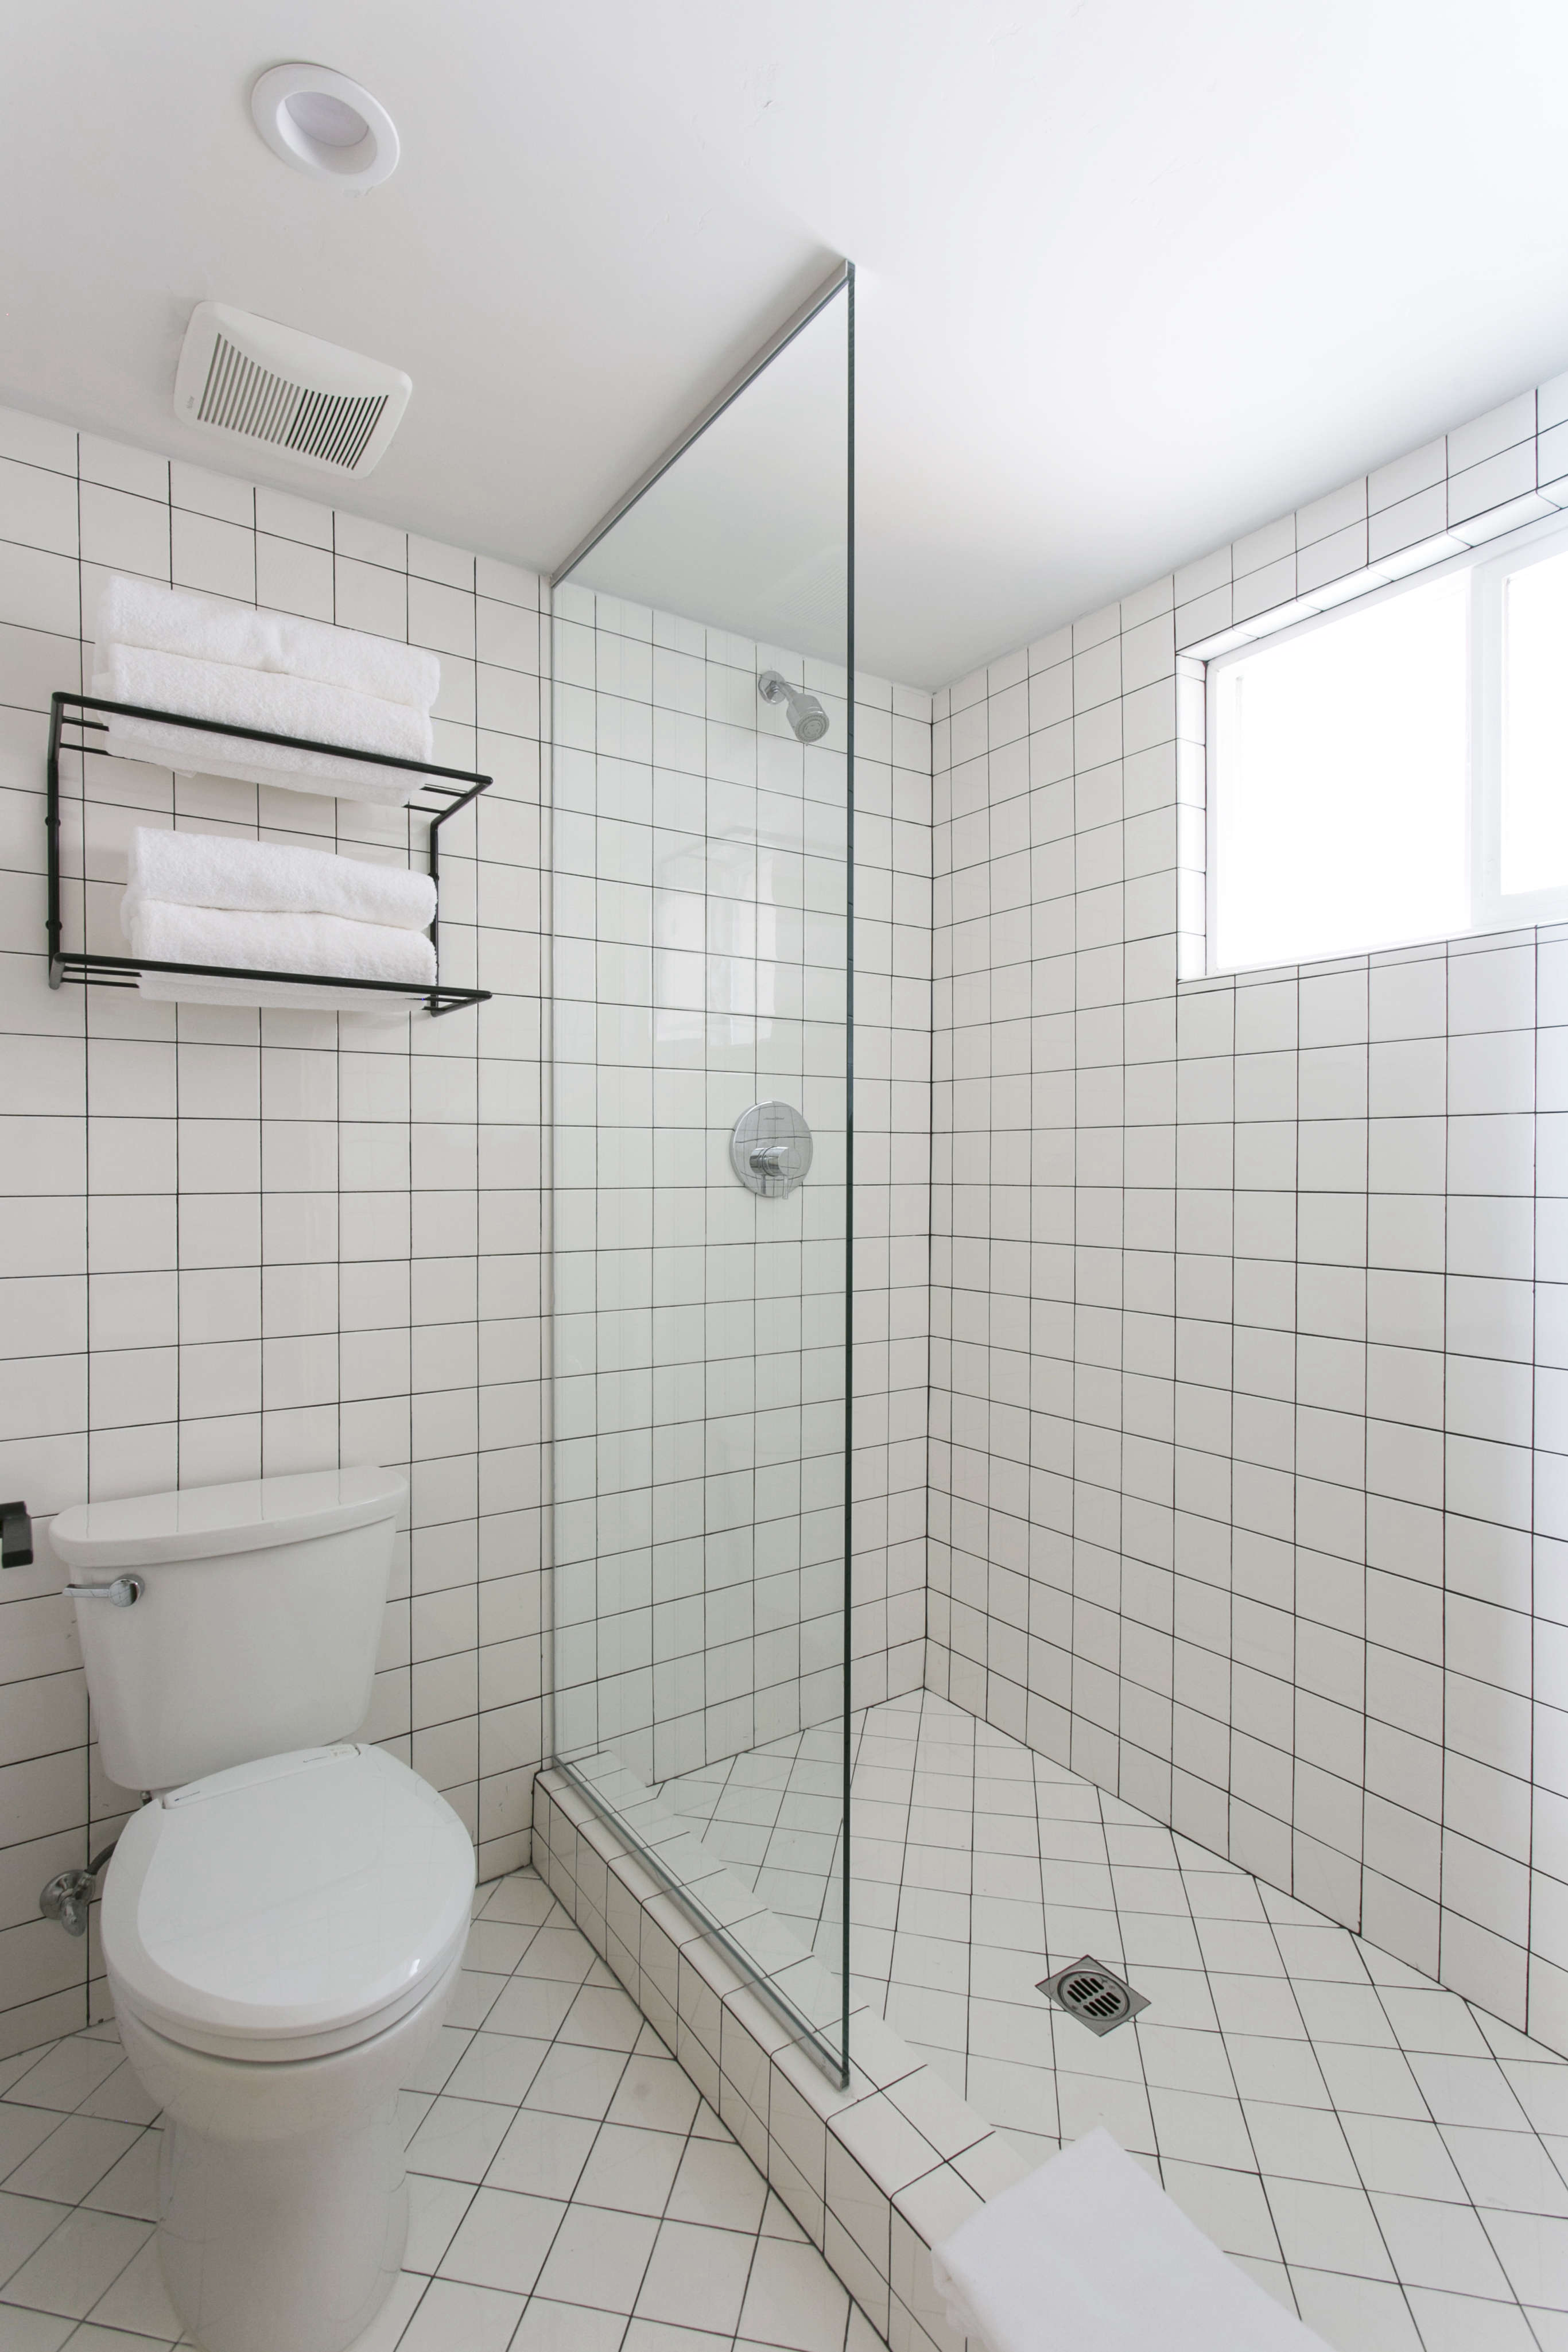 all-white-tile-bath-black-grout-coachman-hotel